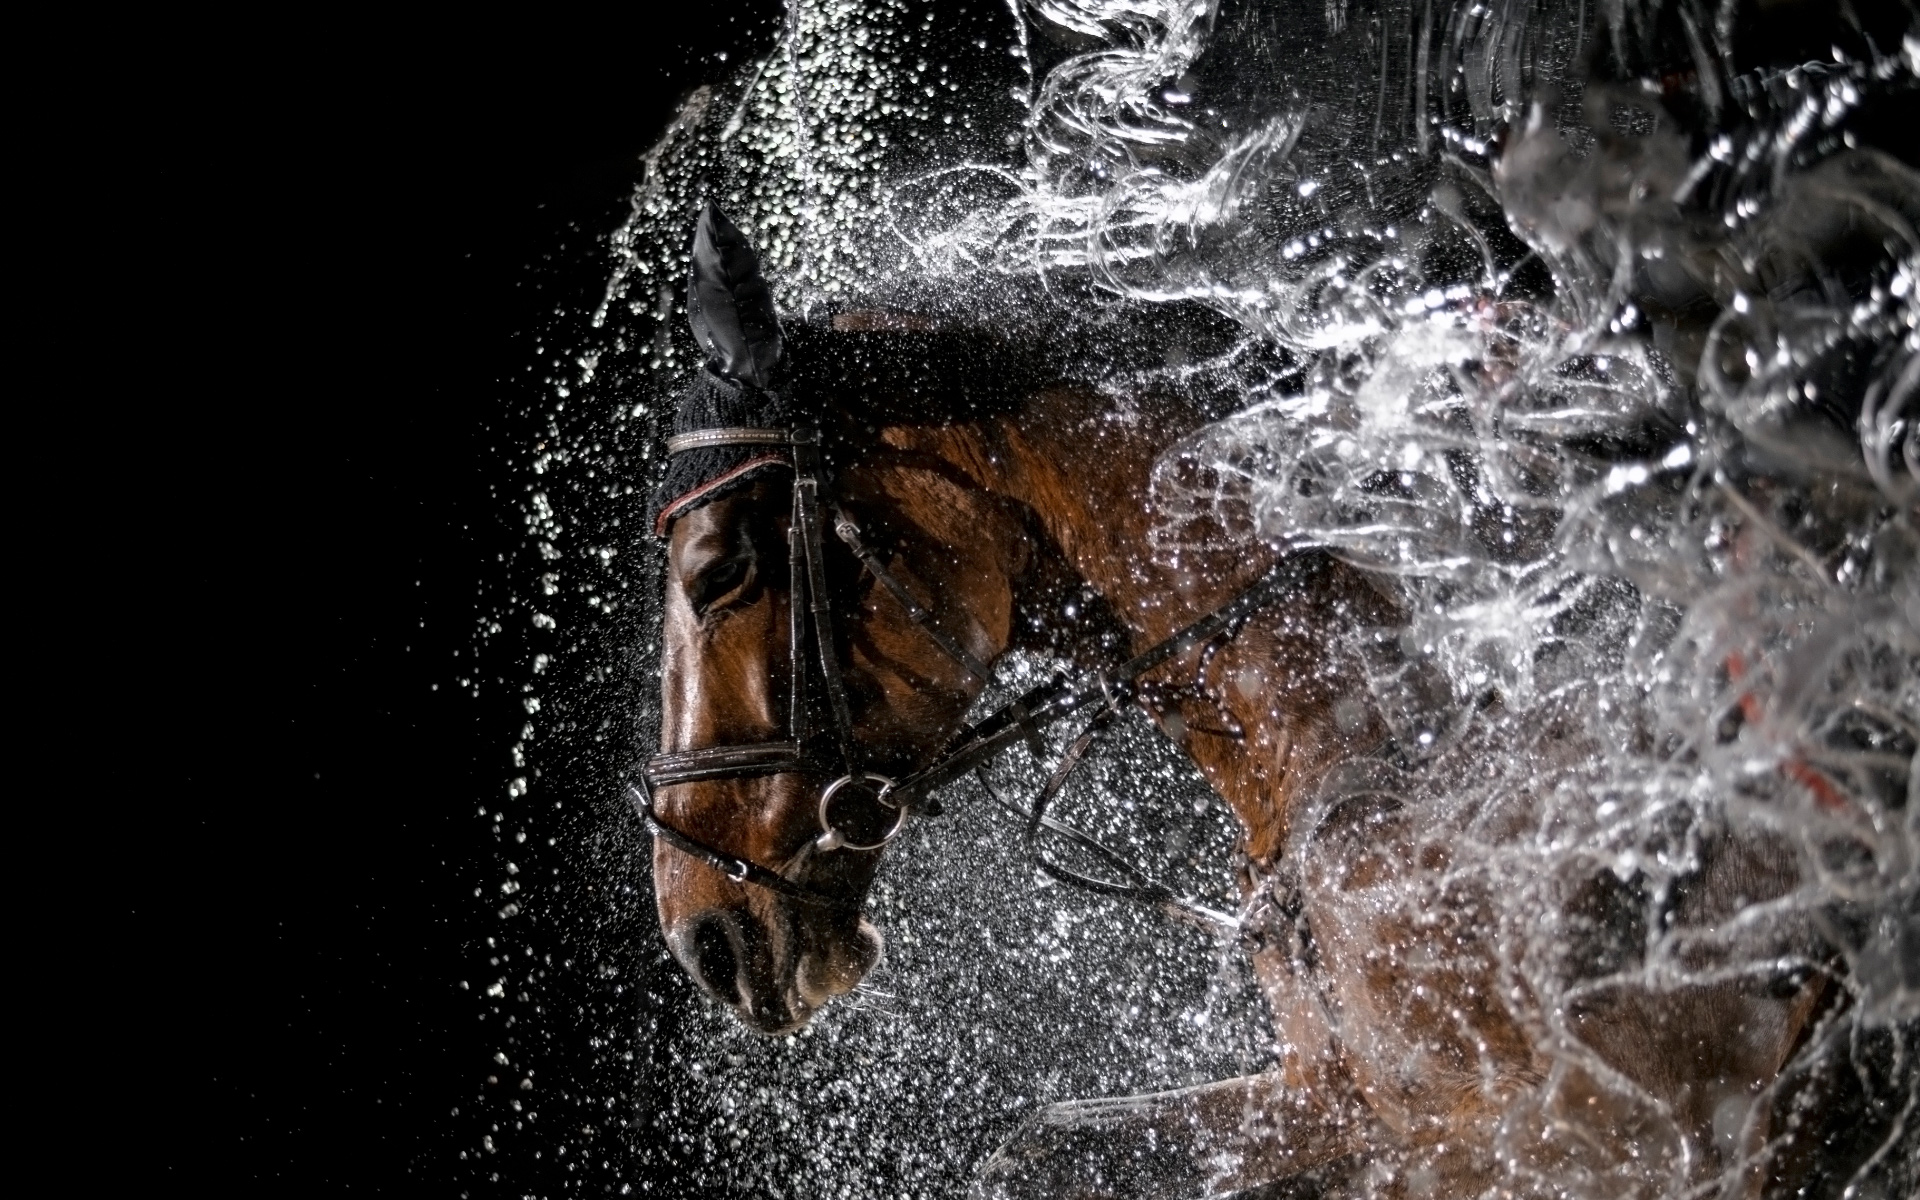 Horse Image Wallpaper 3